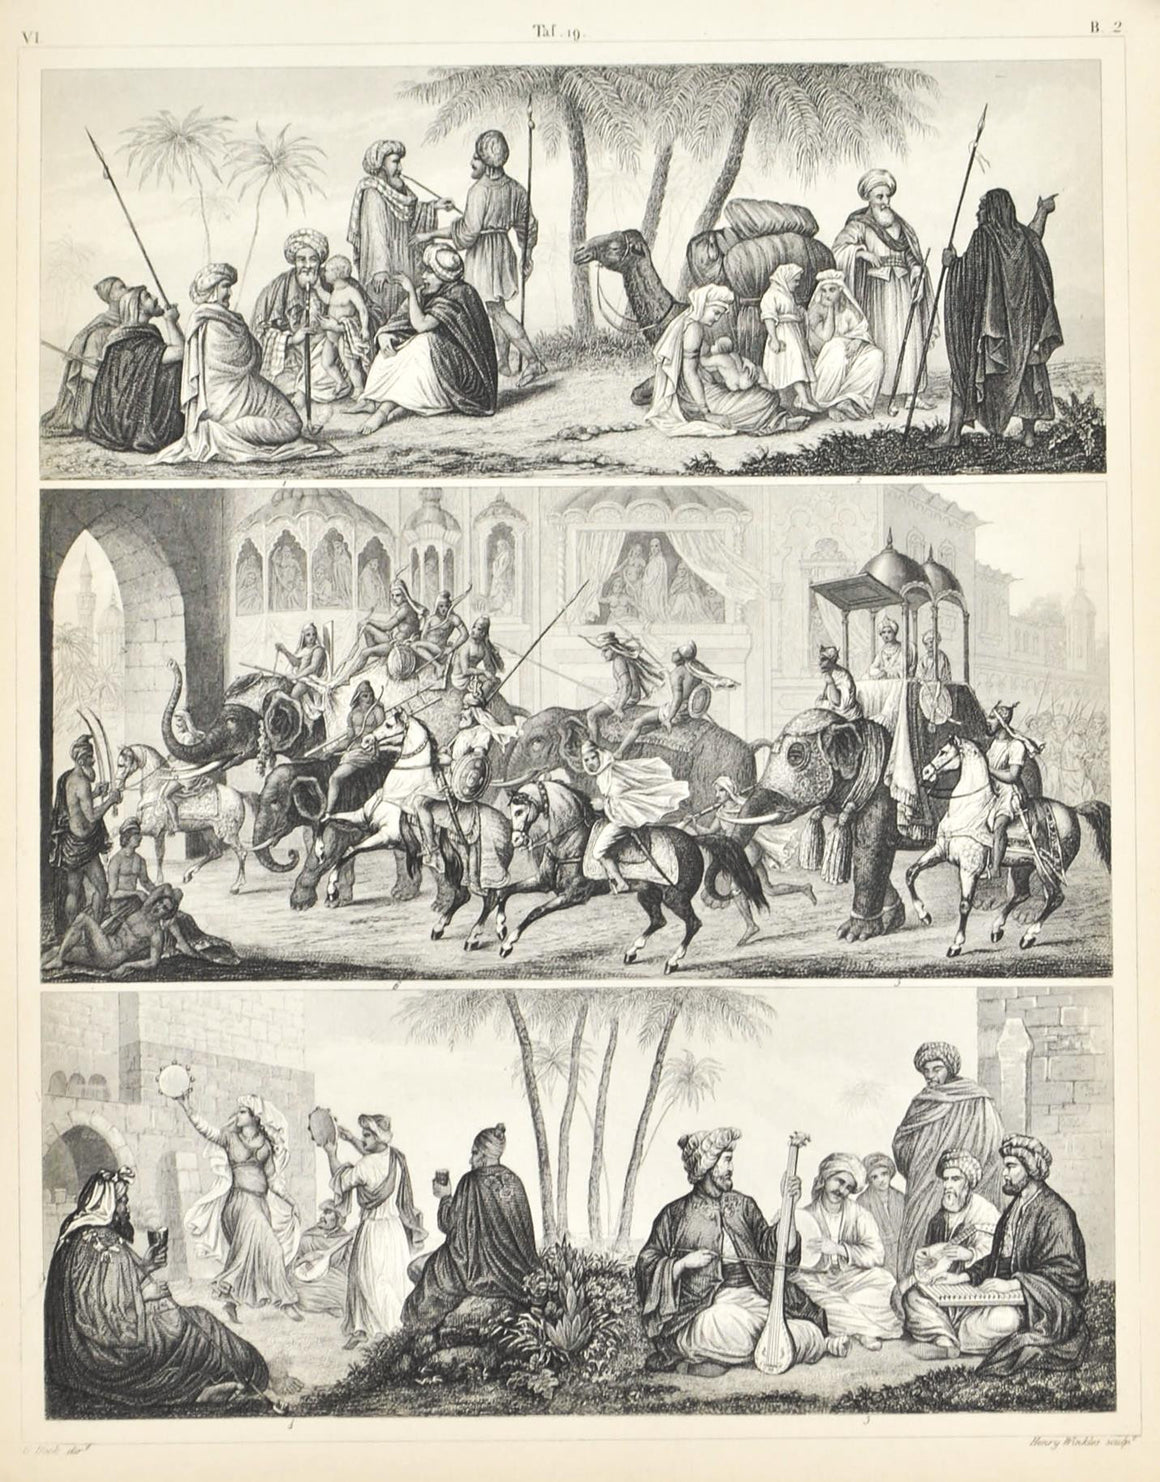 Arabian Music and Dance Nomades Bedouin Antique Print 1857